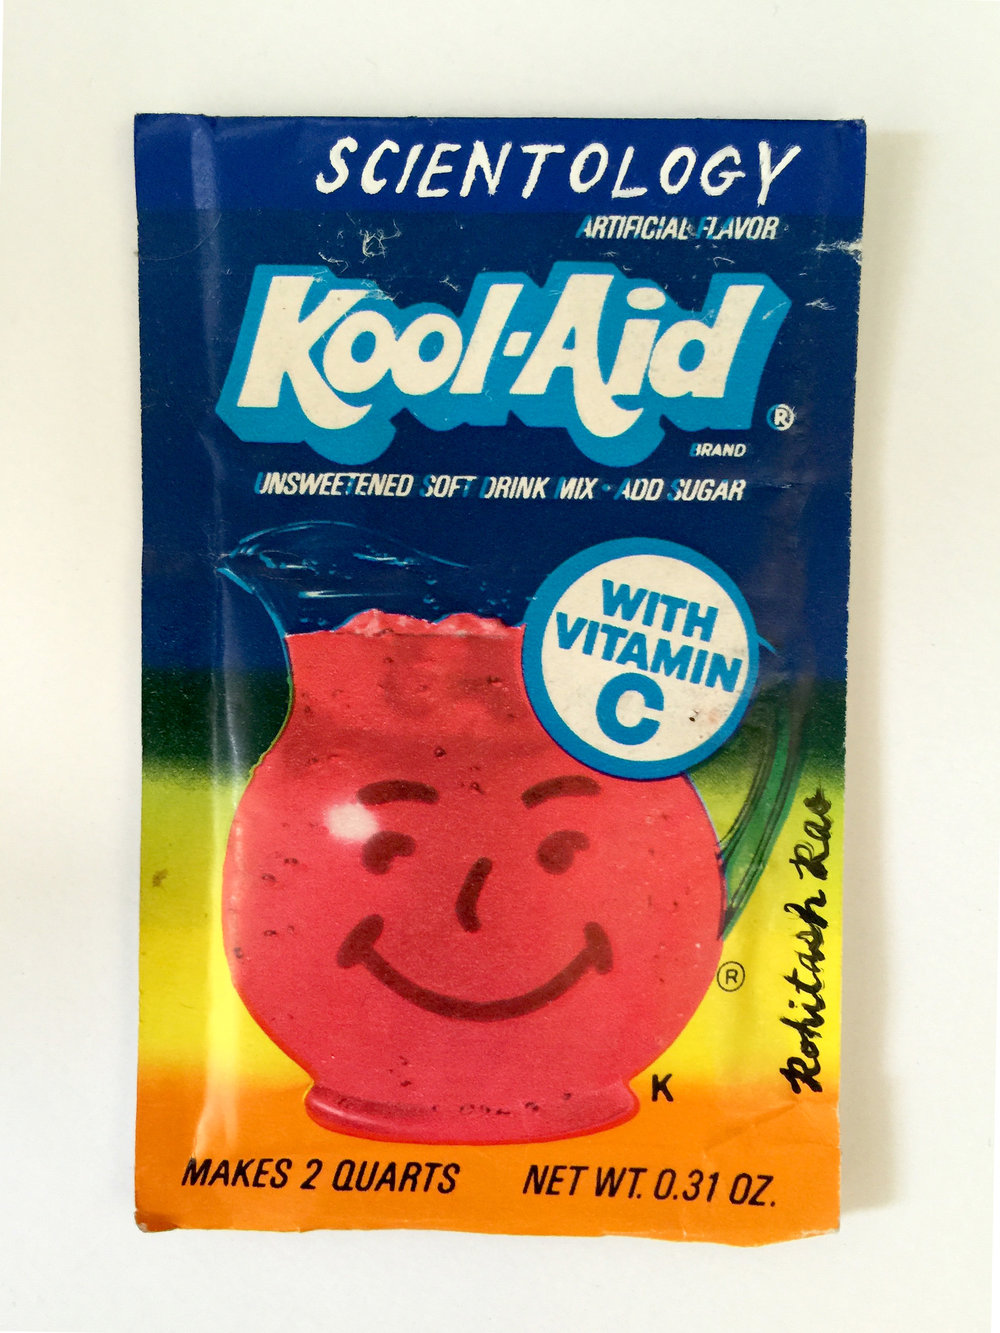 KOOL AID: SCIENTOLOGY